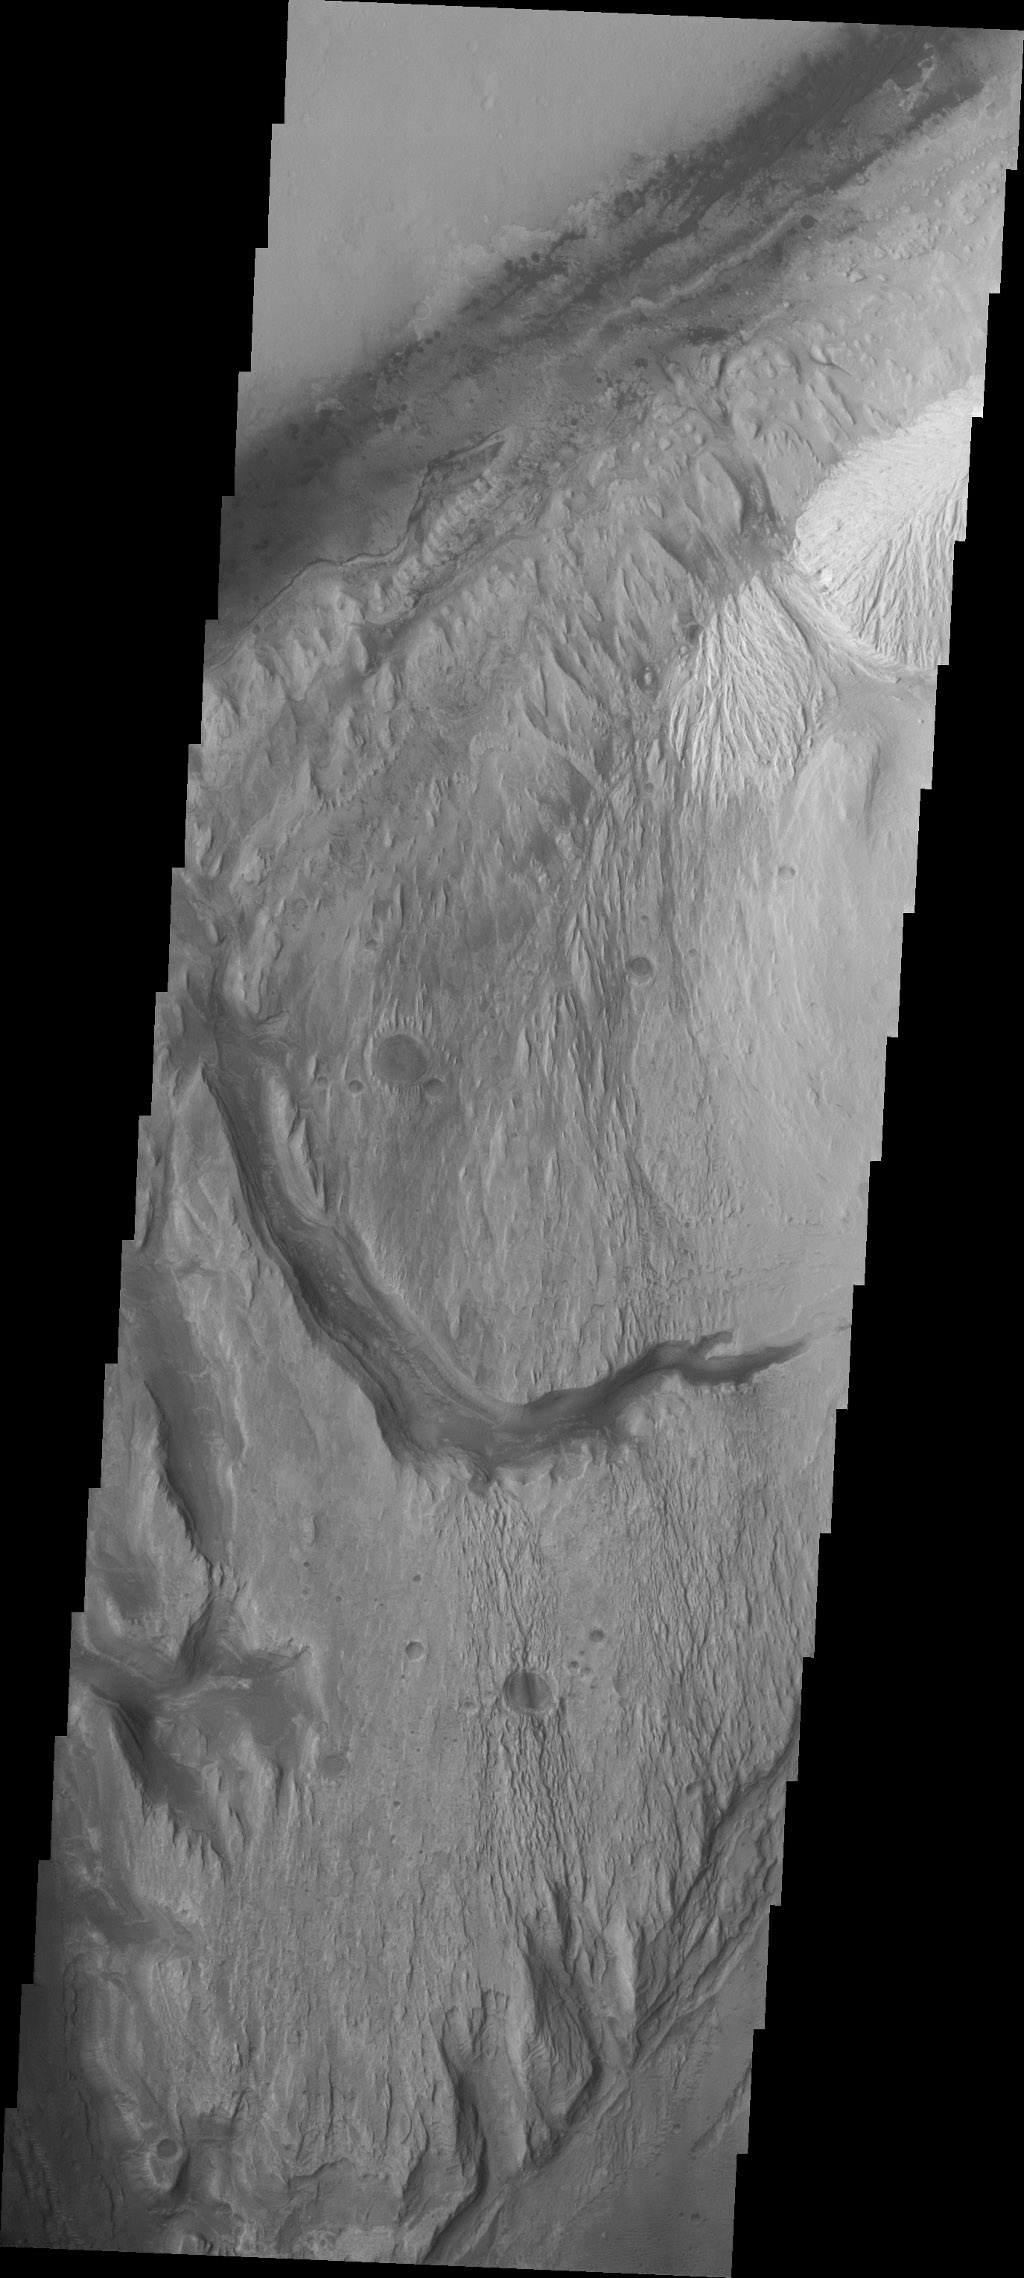 This image captured by NASA's 2001 Mars Odyssey spacecraft continues to follow the channel seen in the past two images. The rover landing site is at the top margin of this image.